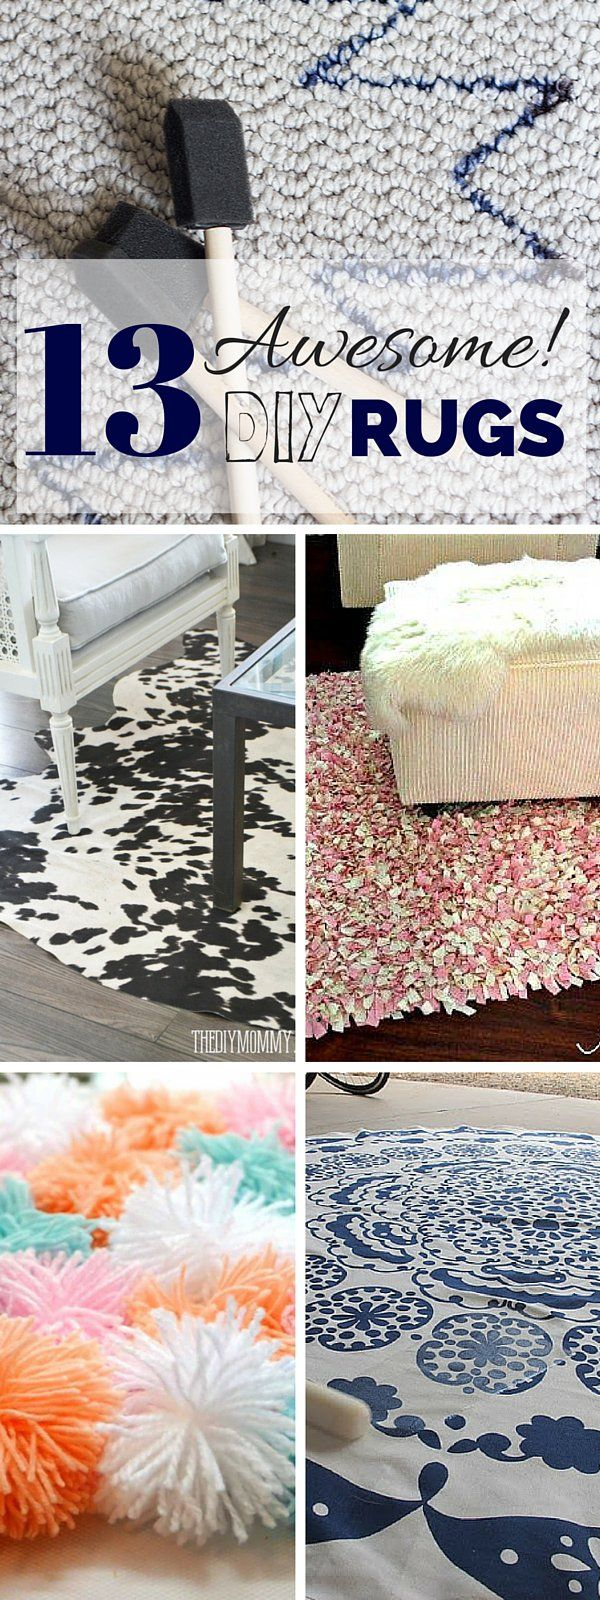 Design Diy Rug best 25 diy rugs ideas on pinterest rug making rope and 13 awesome you could be right now